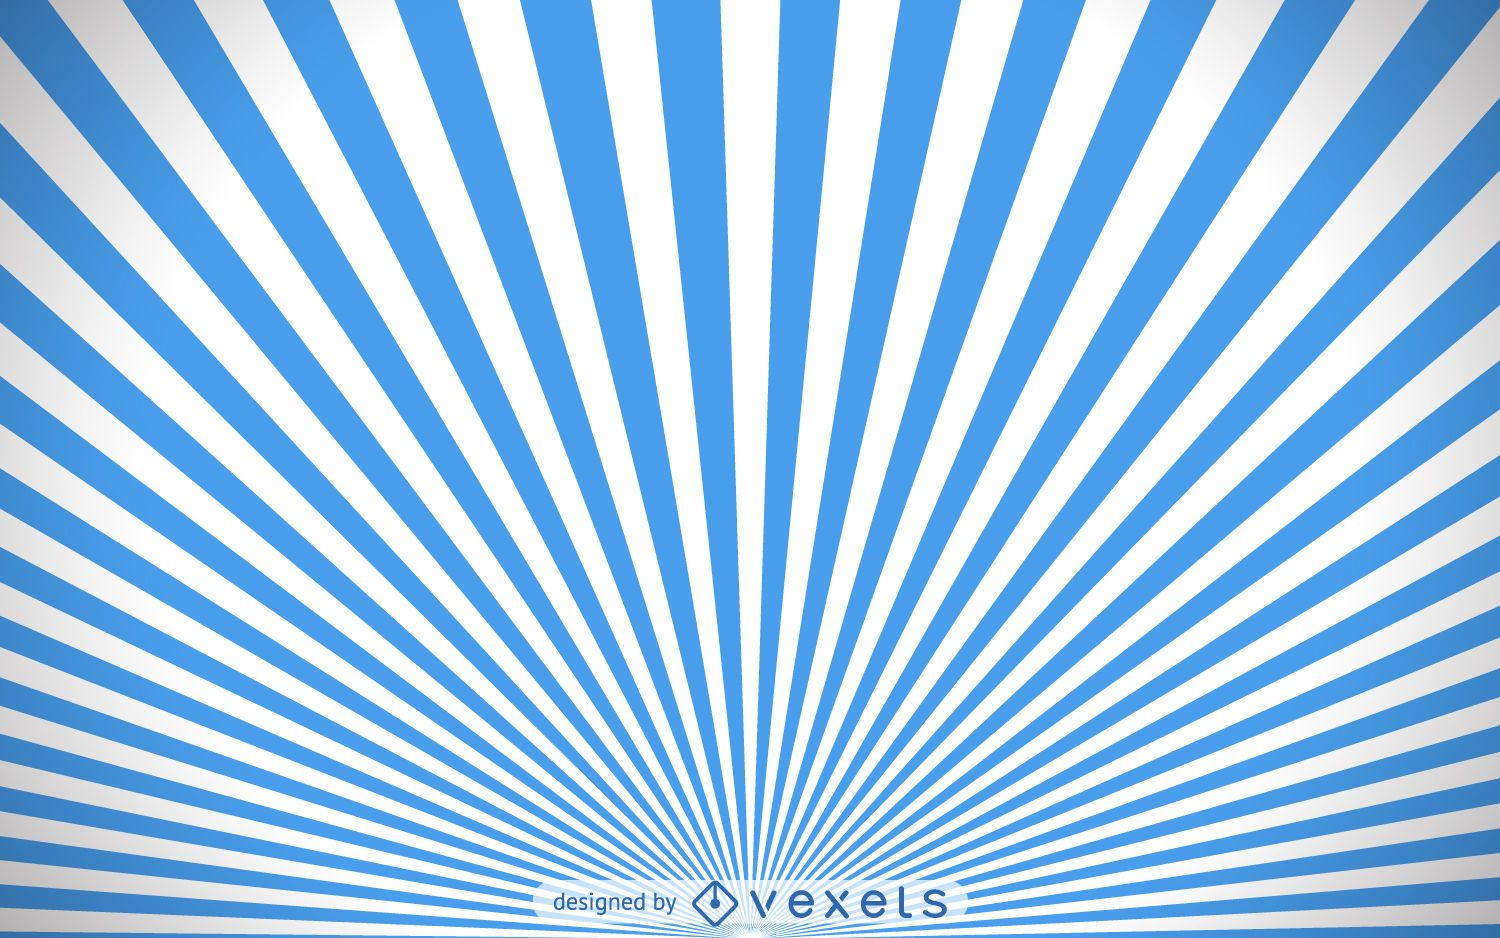 Blue and white starburst background - Vector download